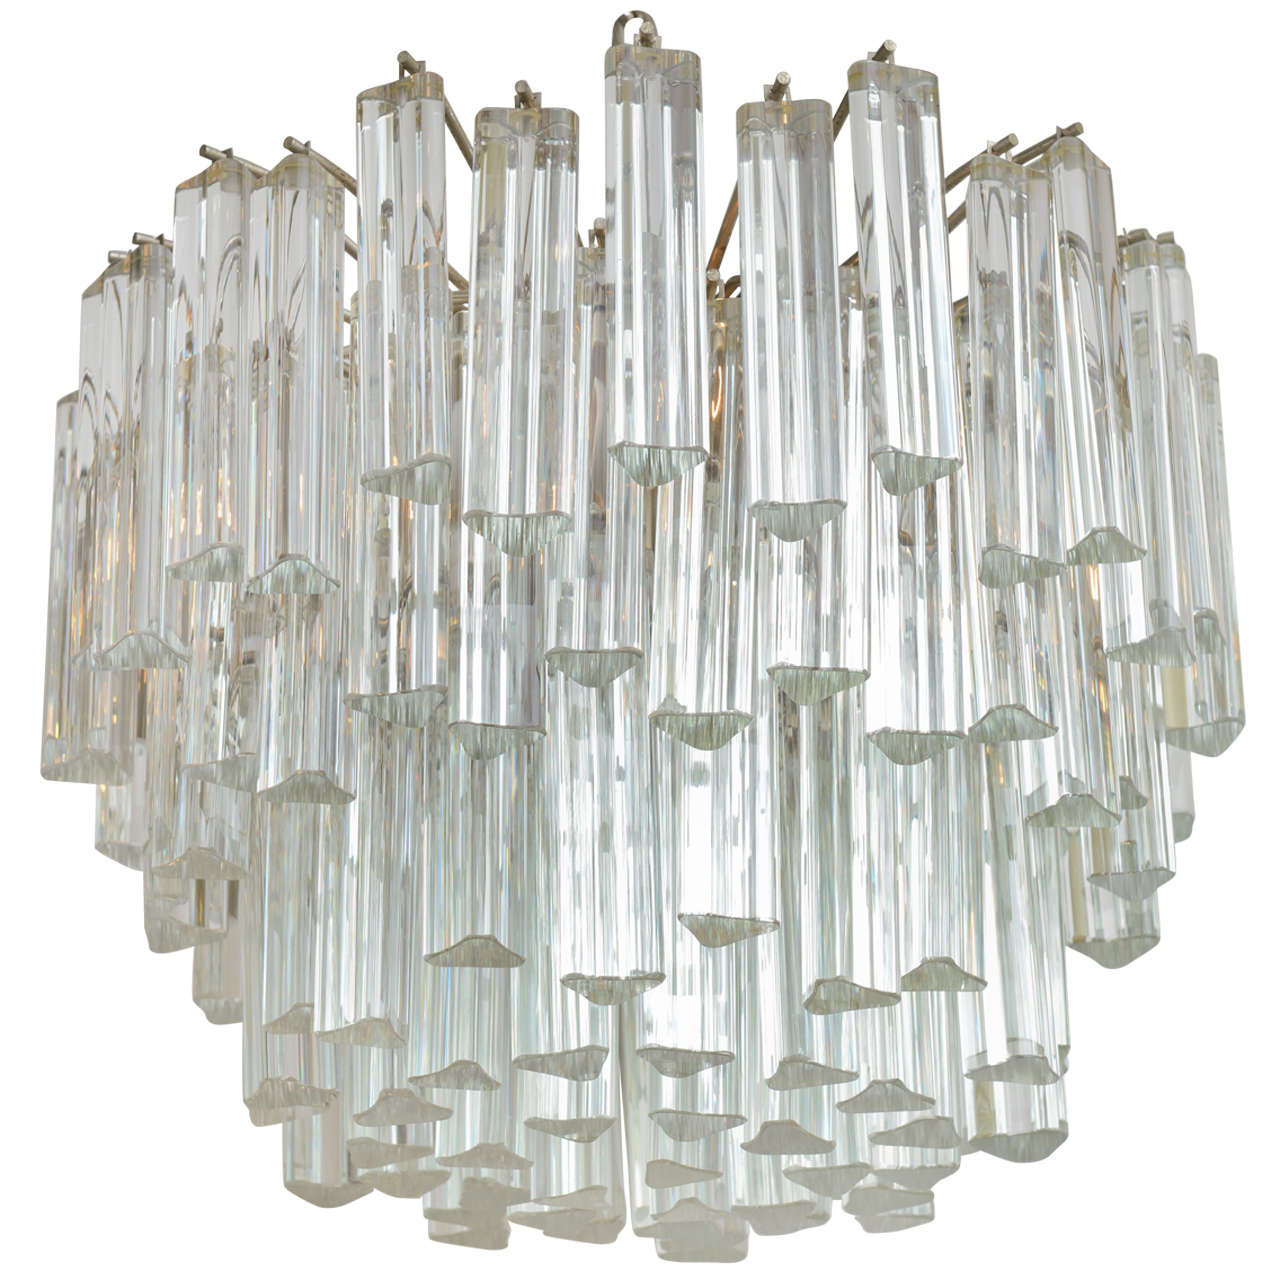 Lush Camer Glass Chandelier with Venini Triedri Crystals For Sale